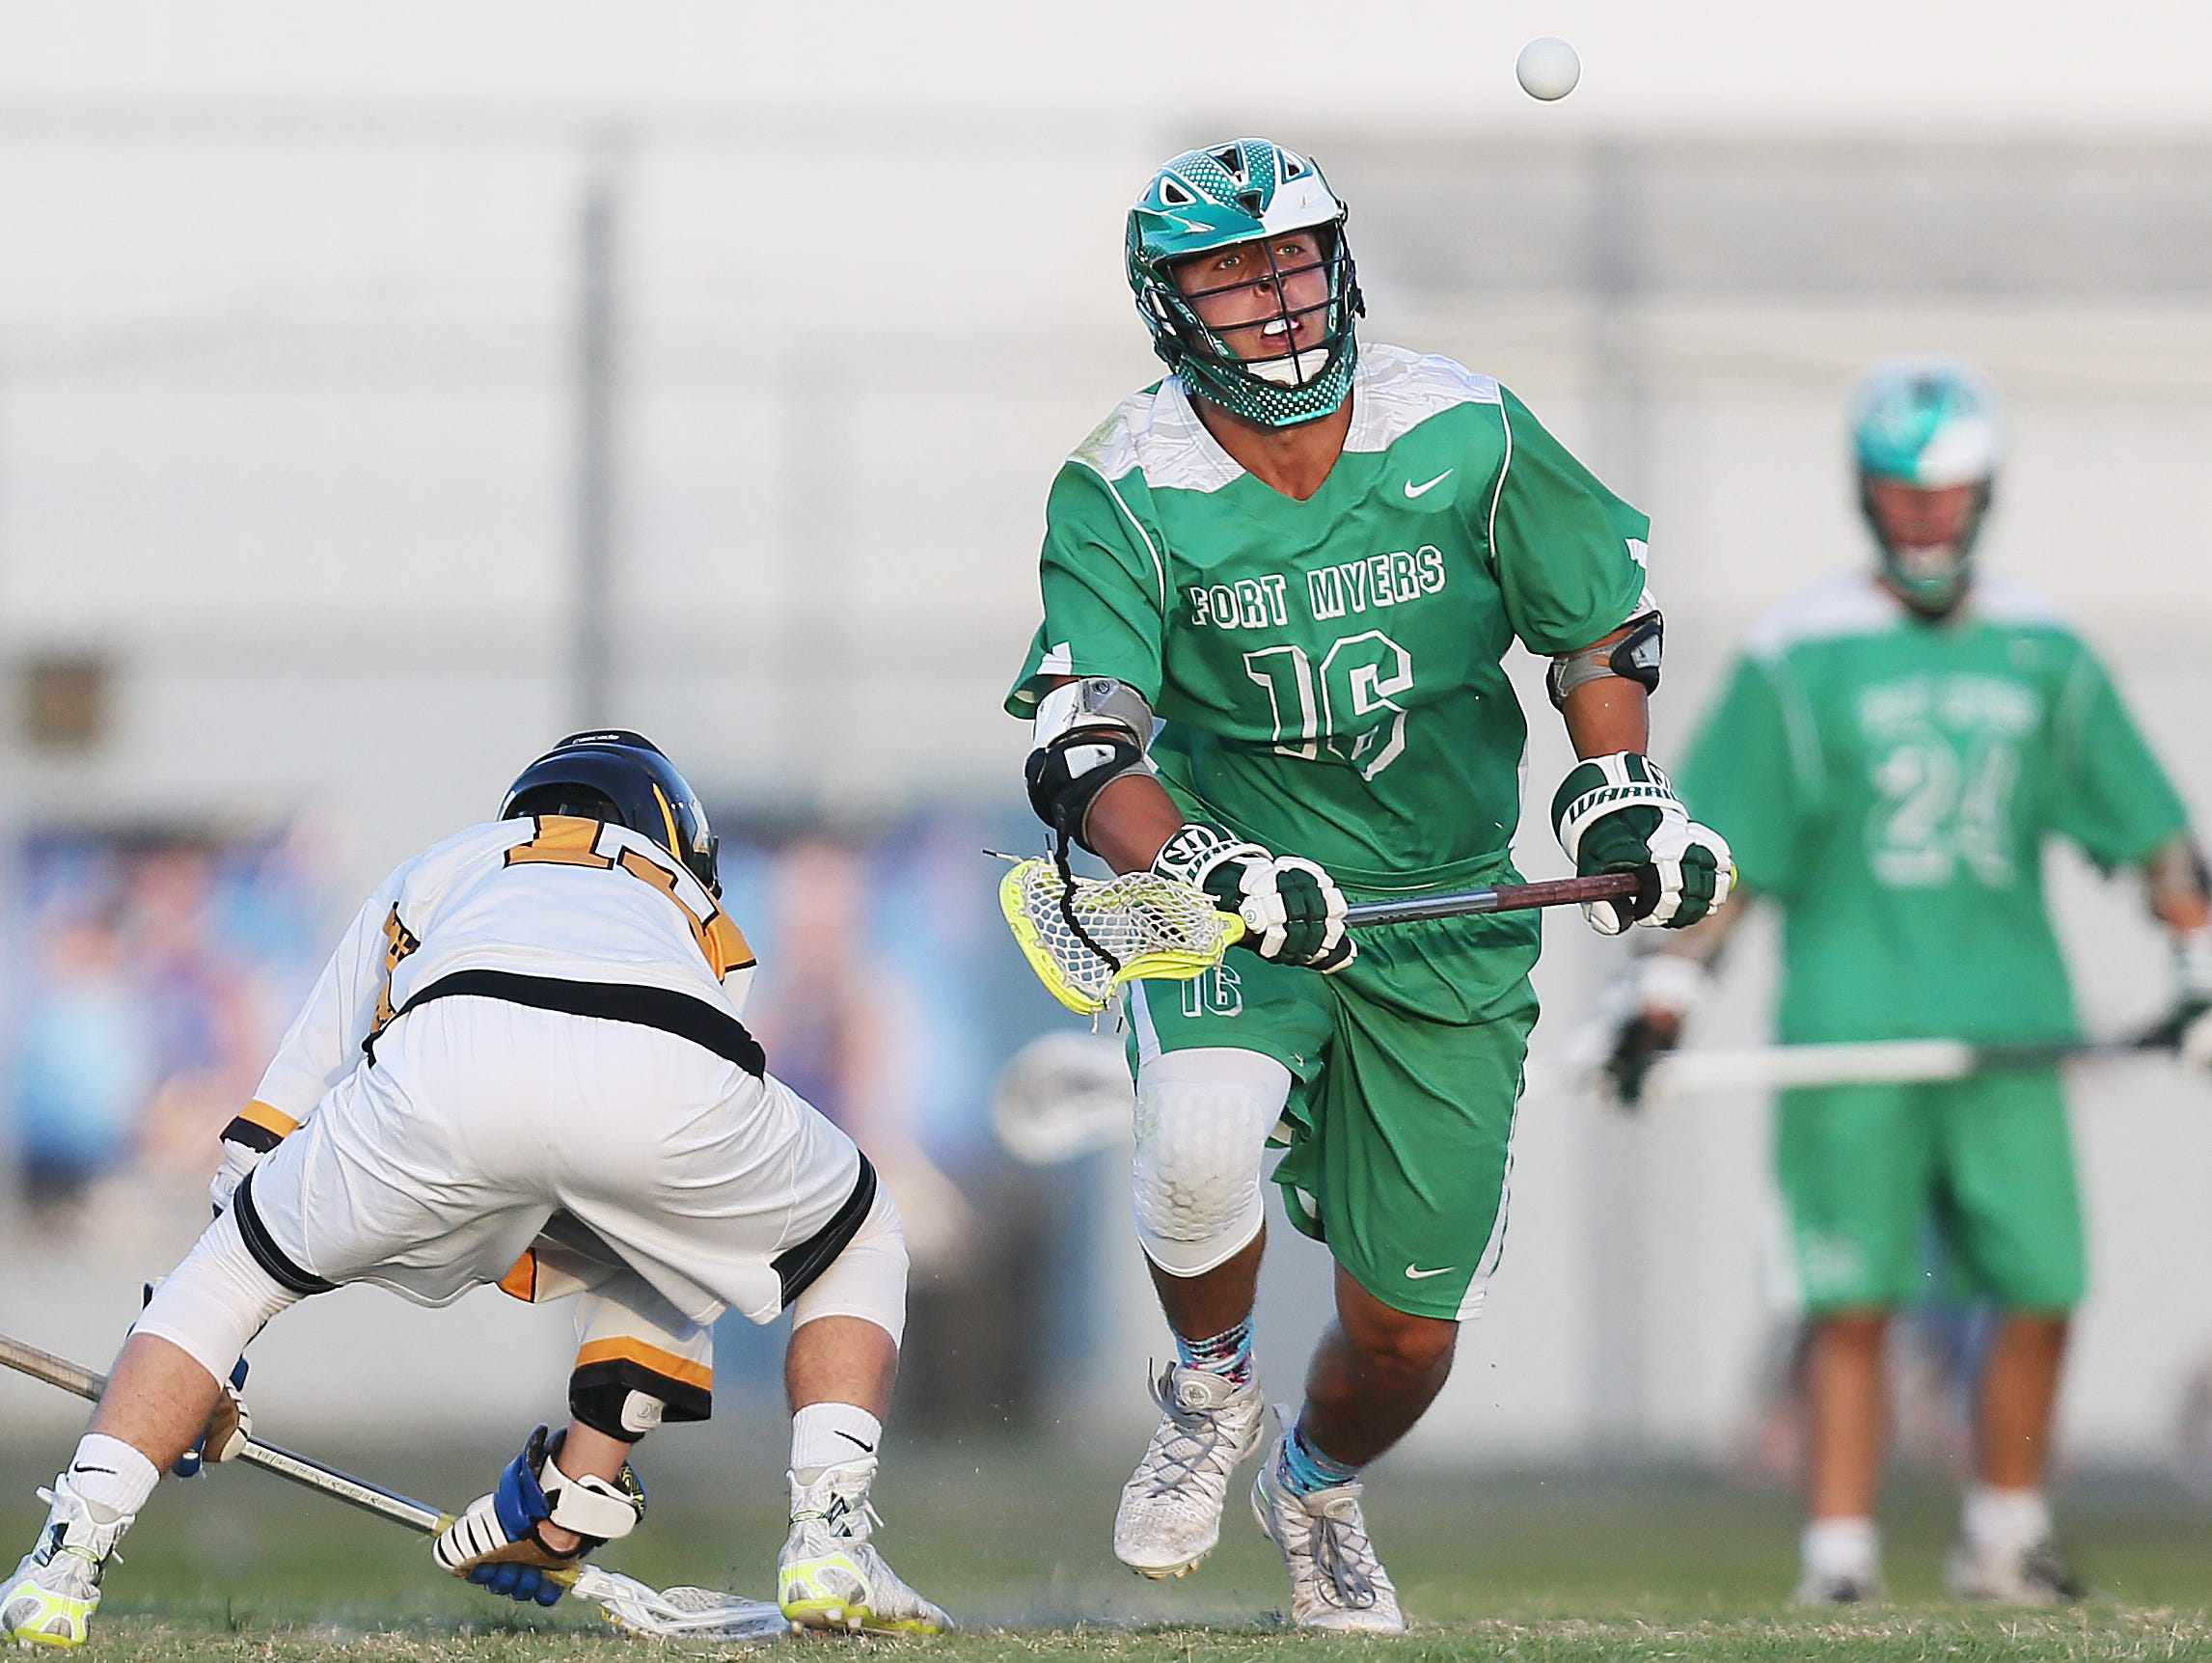 Fort Myers High School's Max Adams, center, tracks a pass against Bishop Verot during the District 18 lacrosse final Friday at the Canterbury School in Fort Myers. Bishop Verot beat Fort Myers 13-6.